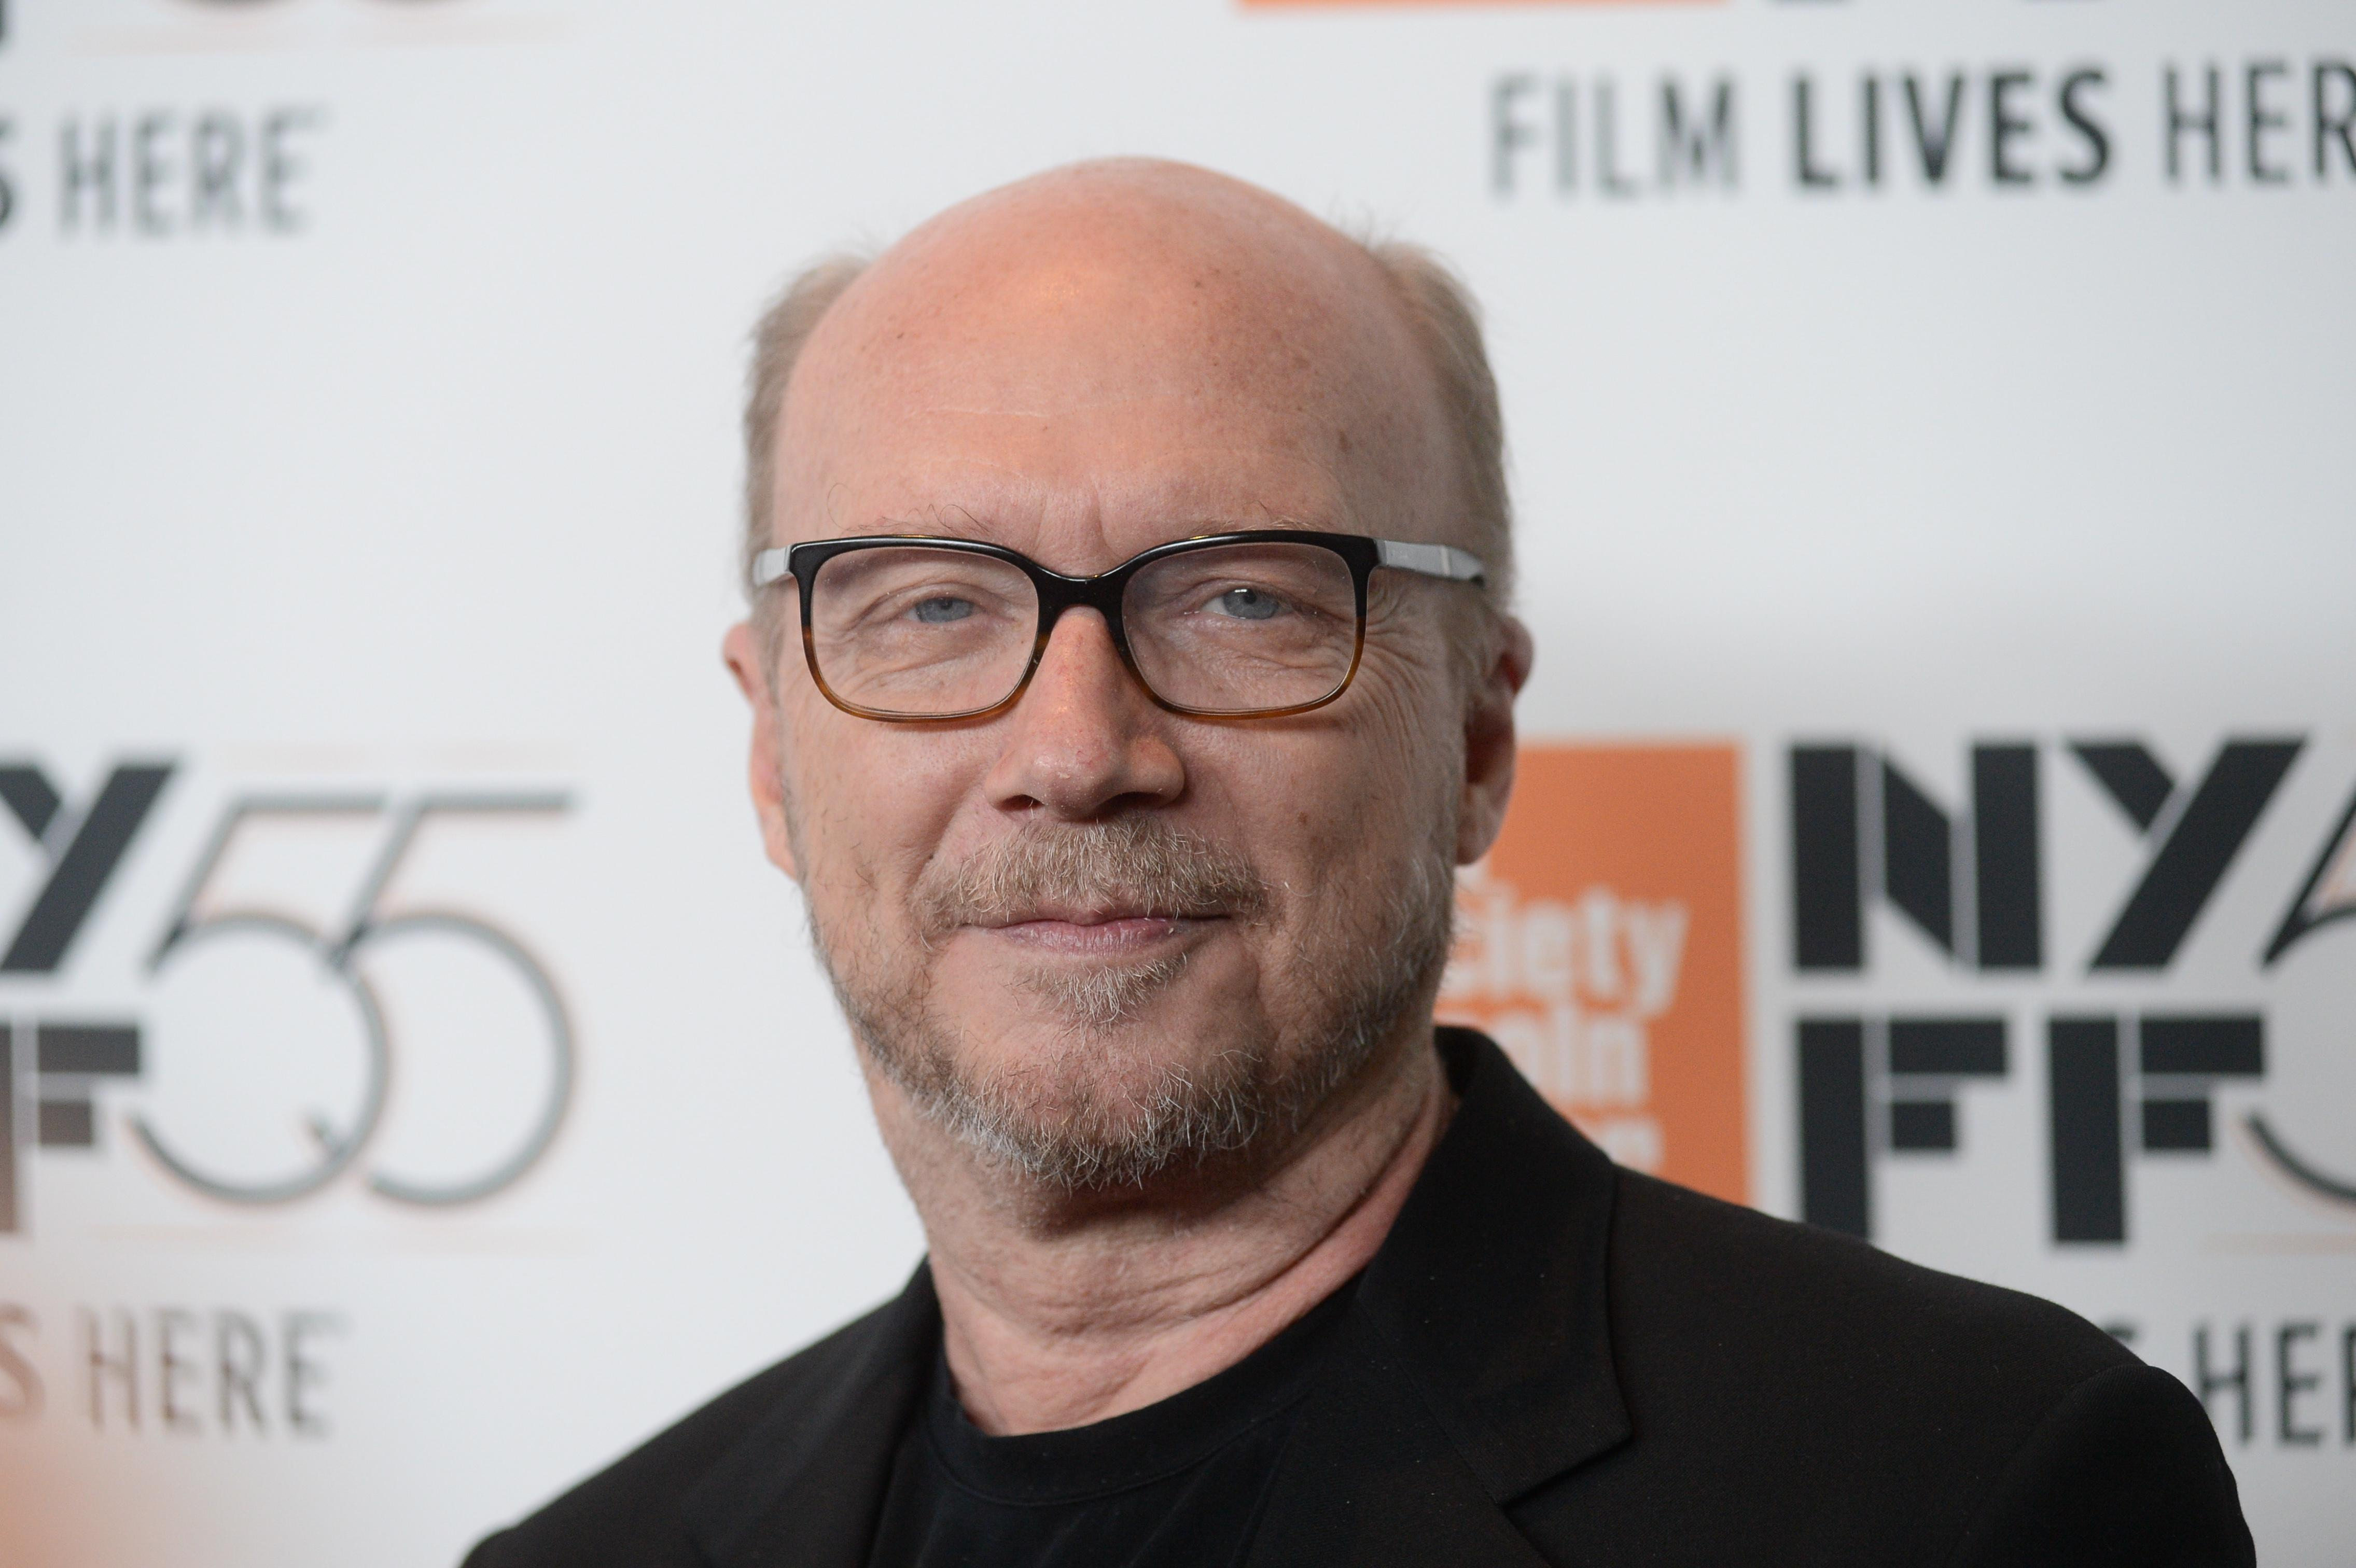 paul haggis crash Paul haggis winning oscars for crash in 2006 he called hollywood a 'fairly sexist' town in a previous interview with the guardian photograph: vince bucci/getty.